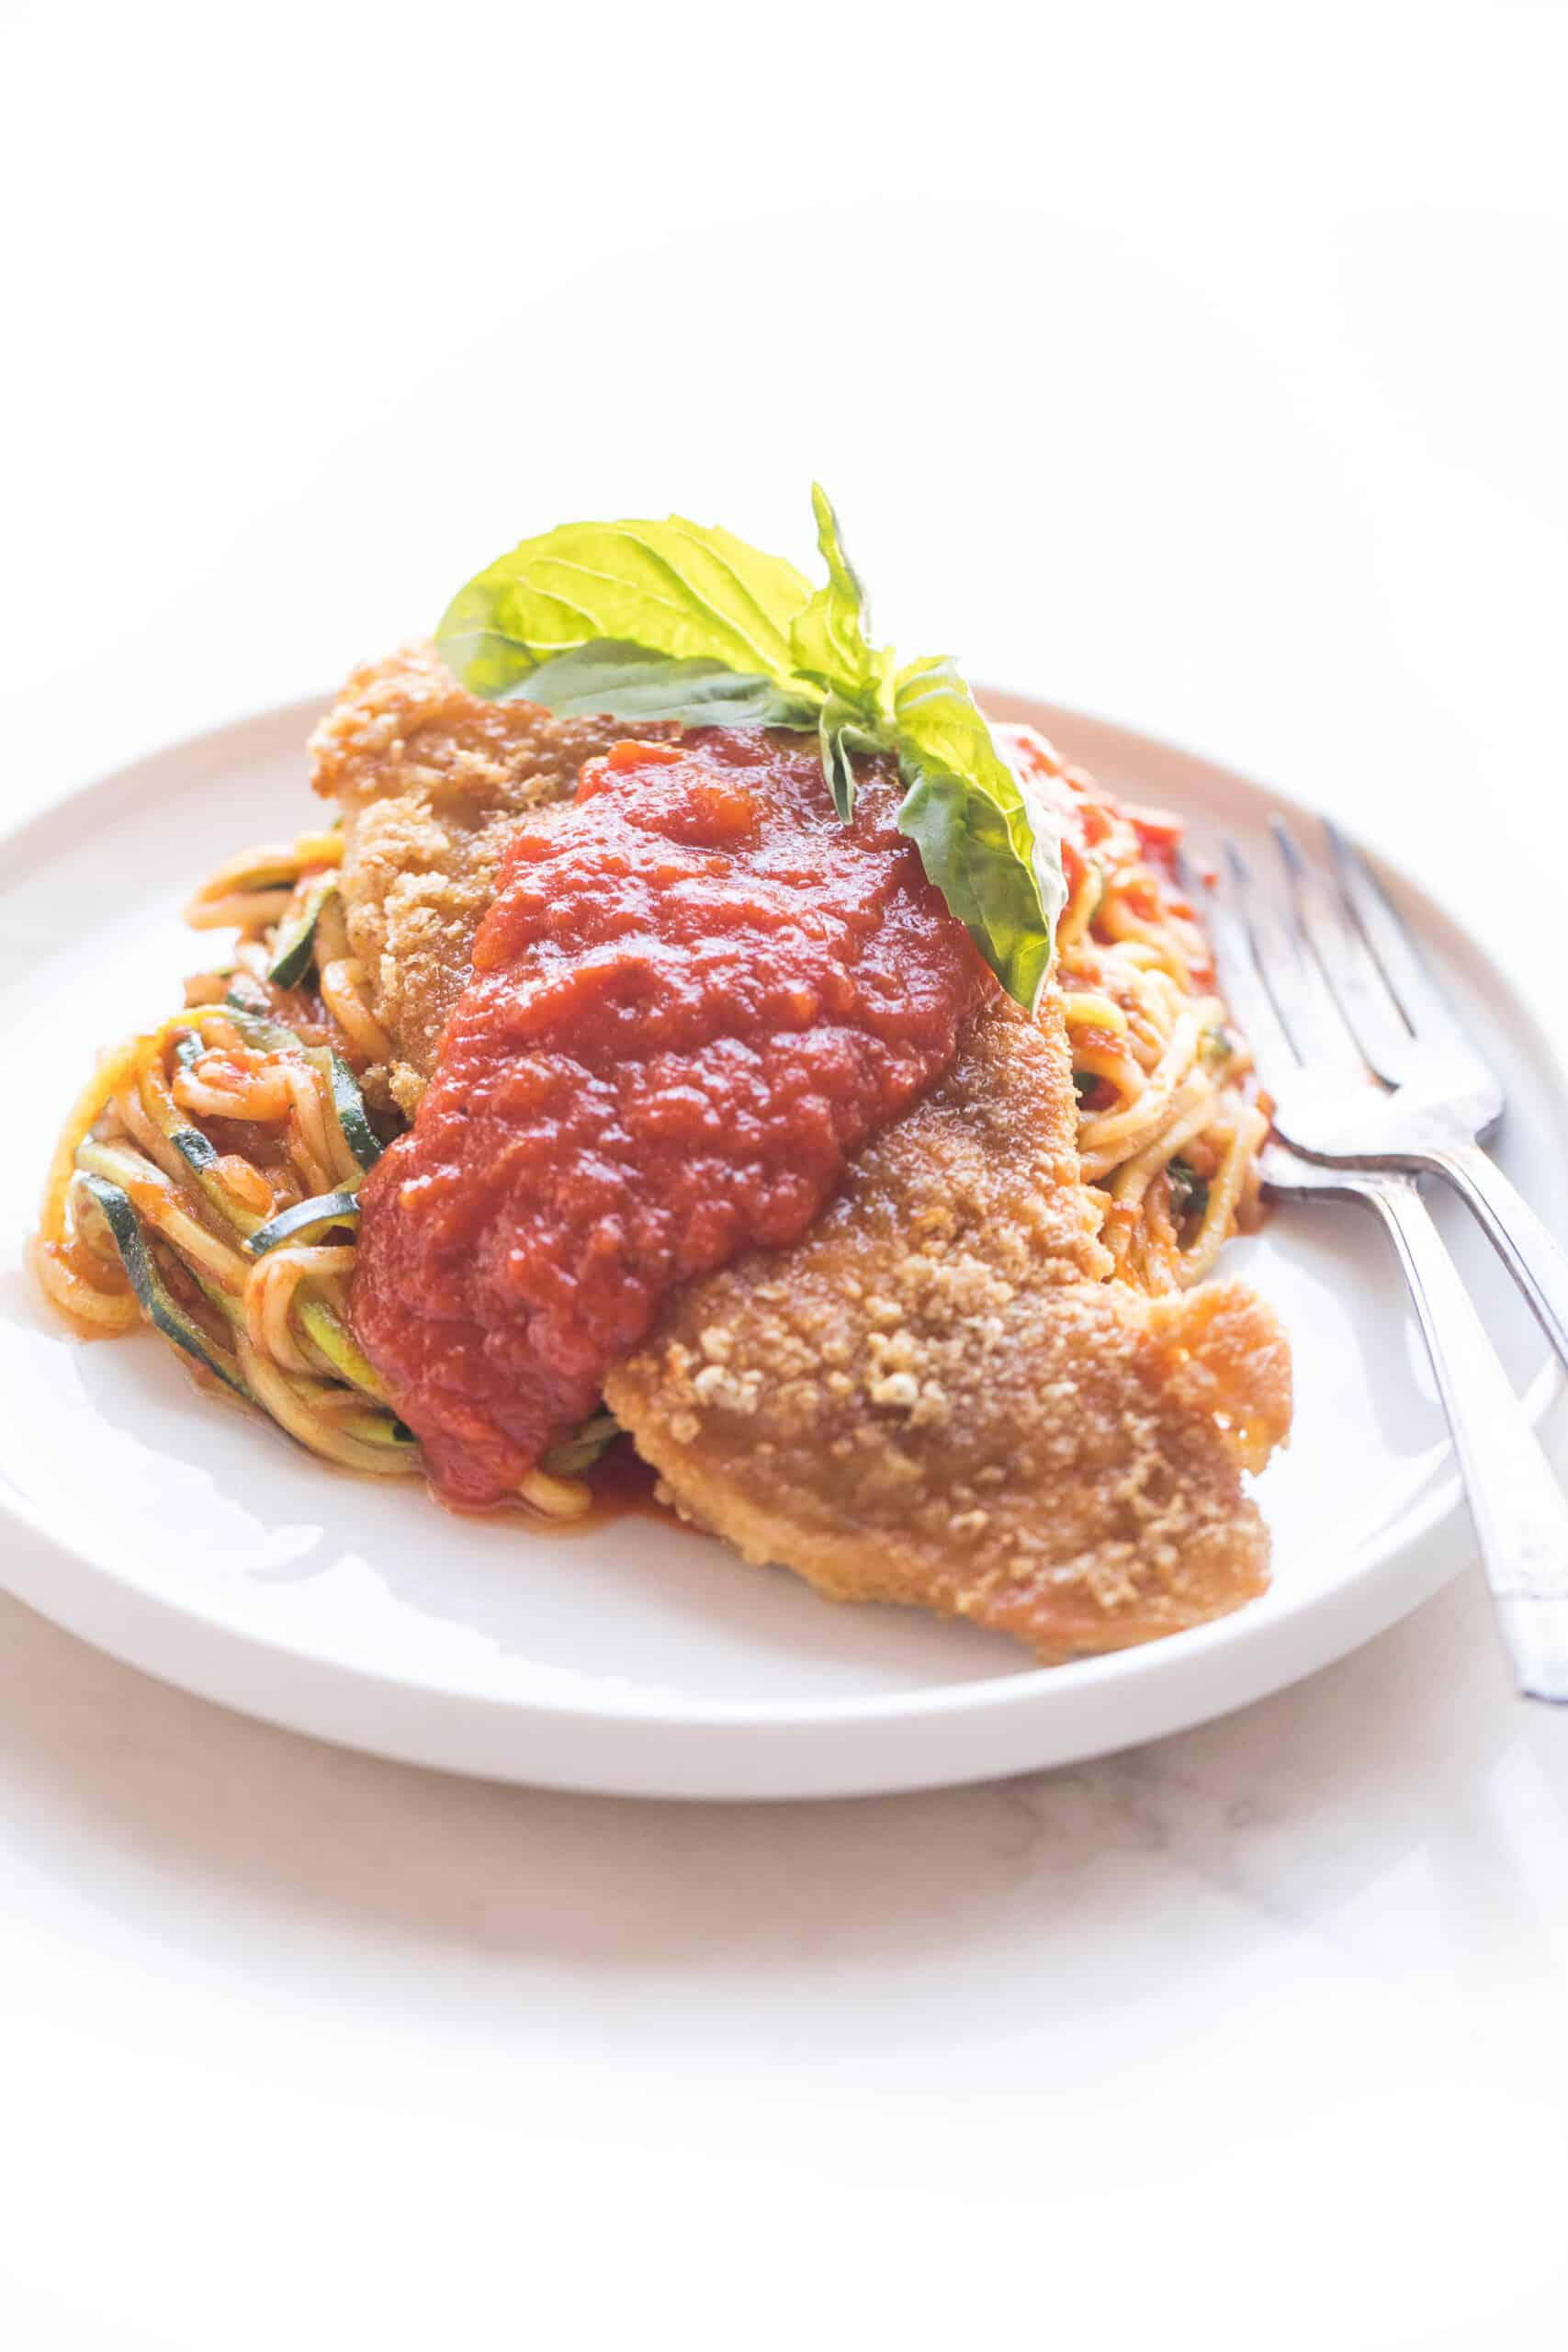 chicken parmesan topped with marinara sauce over zucchini noodles on a white plate and background